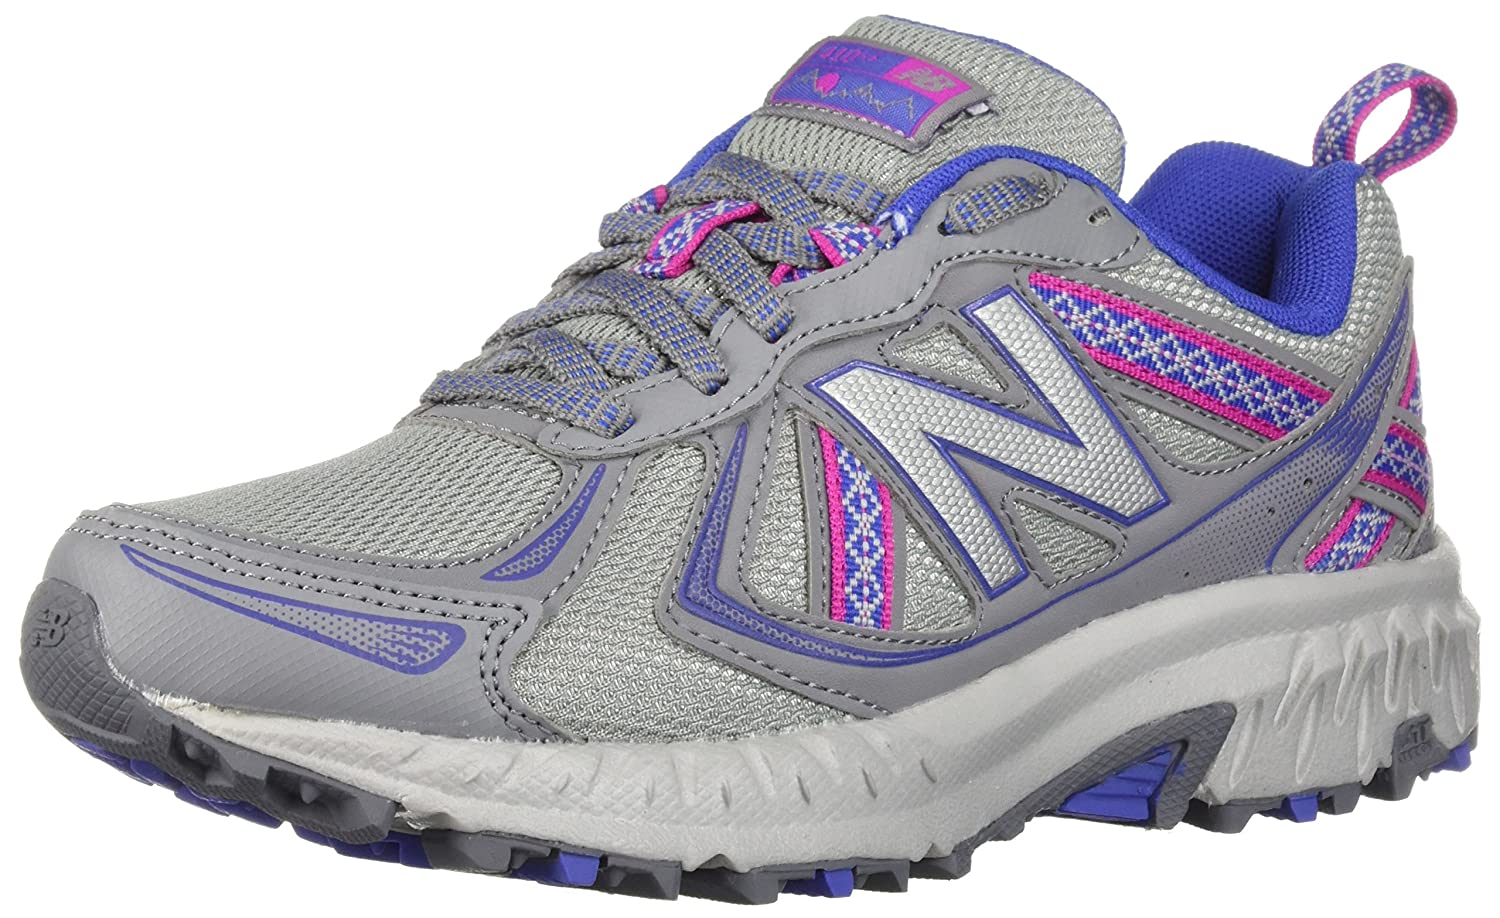 New Balance Women's WT410v5 Cushioning Trail Running Shoe B0751GSLQZ 10 D US|Steel